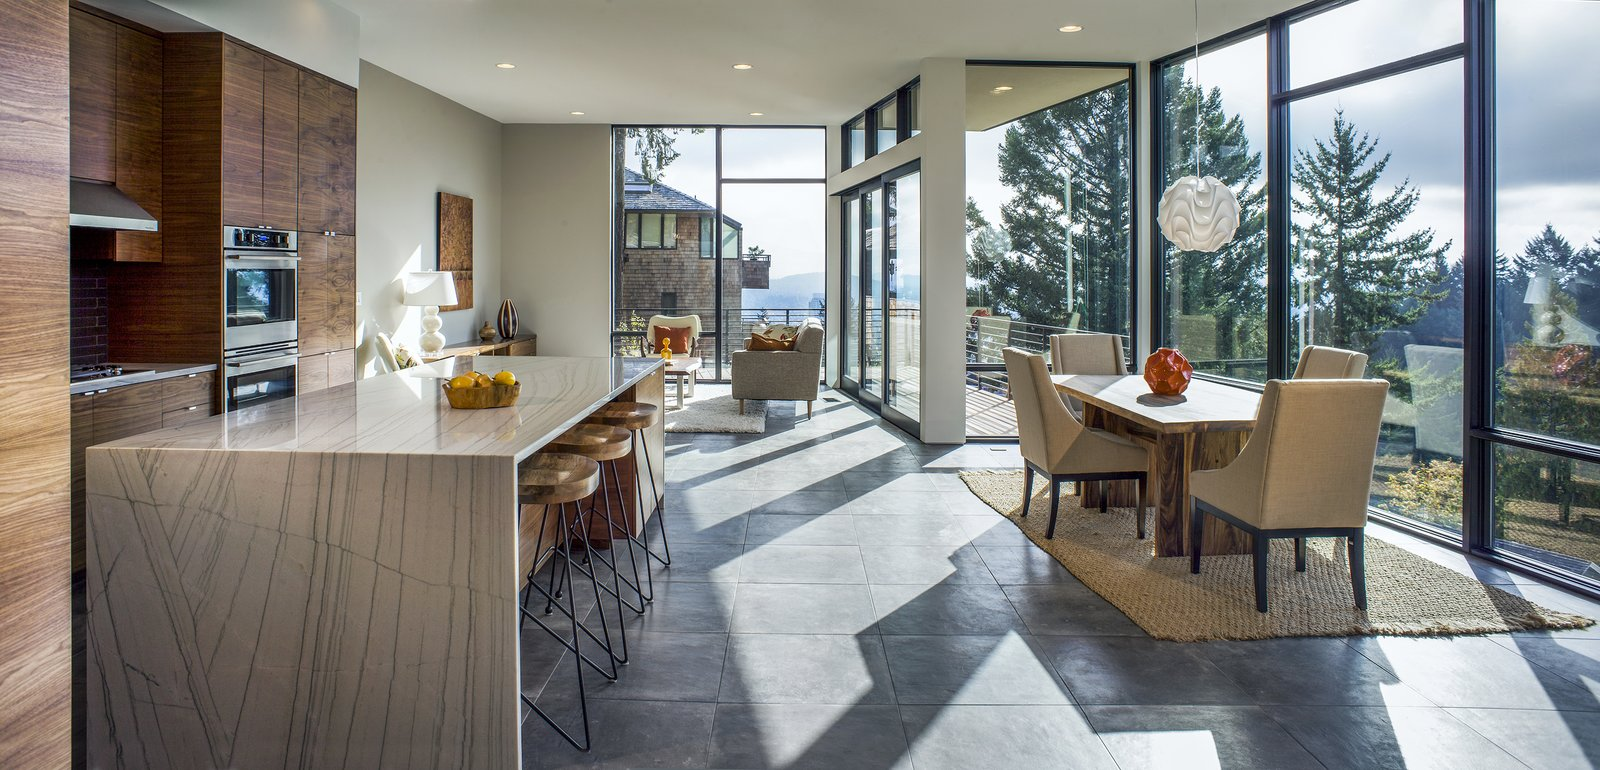 Wood Cabinet, Ceramic Tile Floor, Granite Counter, Ceramic Tile Backsplashe, Wall Oven, Ceiling Lighting, Cooktops, Range Hood, Range, Microwave, Chair, Sofa, Dining Room, Table, and Stools Kitchen/Living/Dining  Canterbury Residence by Scott | Edwards Architecture